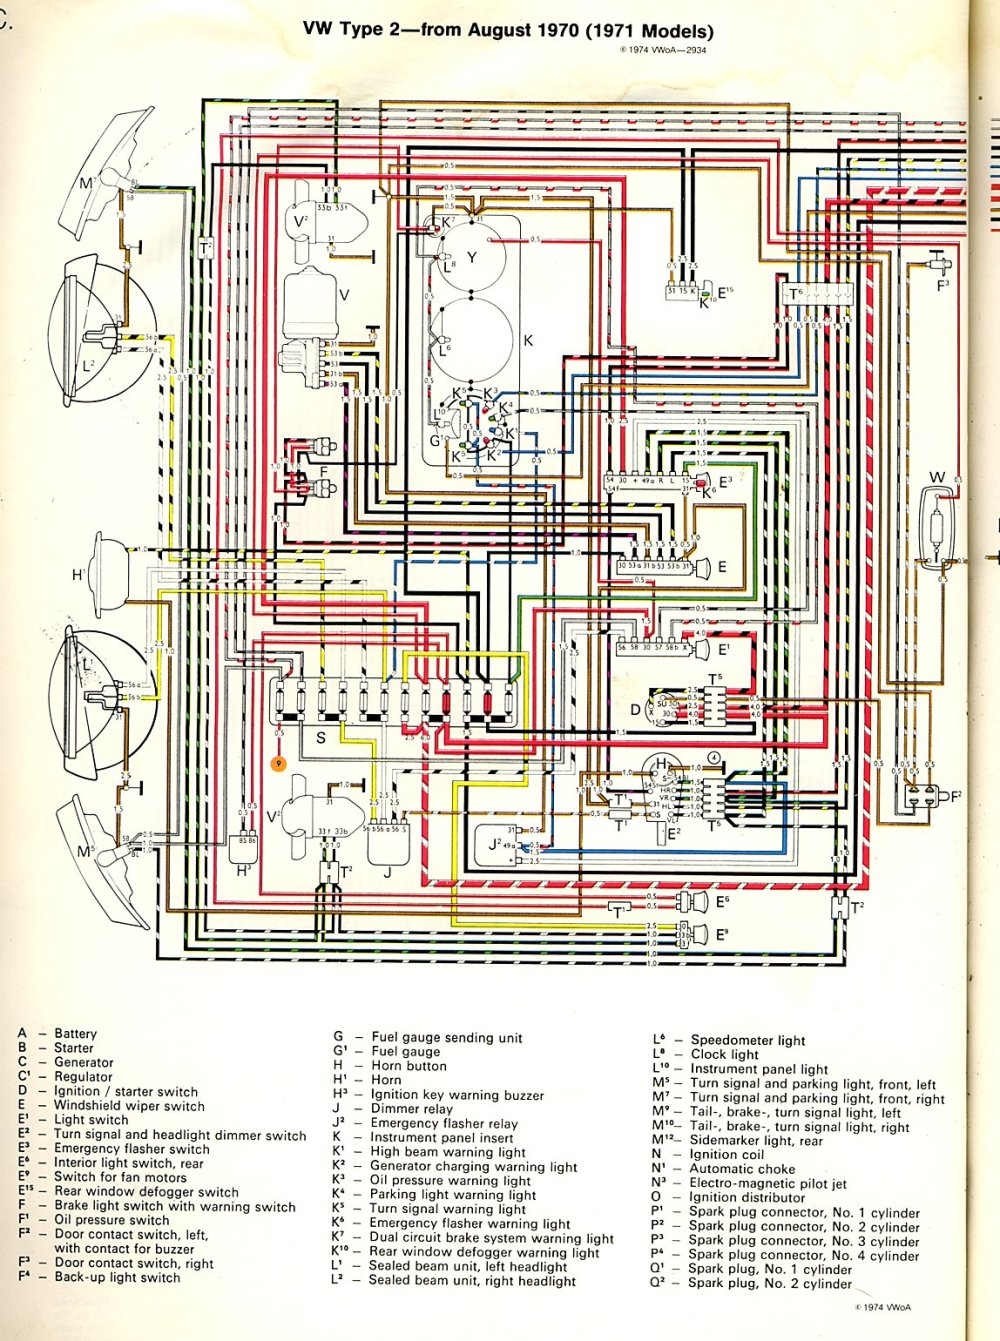 medium resolution of thesamba com type 2 wiring diagrams 2011 vw jetta fuse diagram vw 1971 fuse diagram